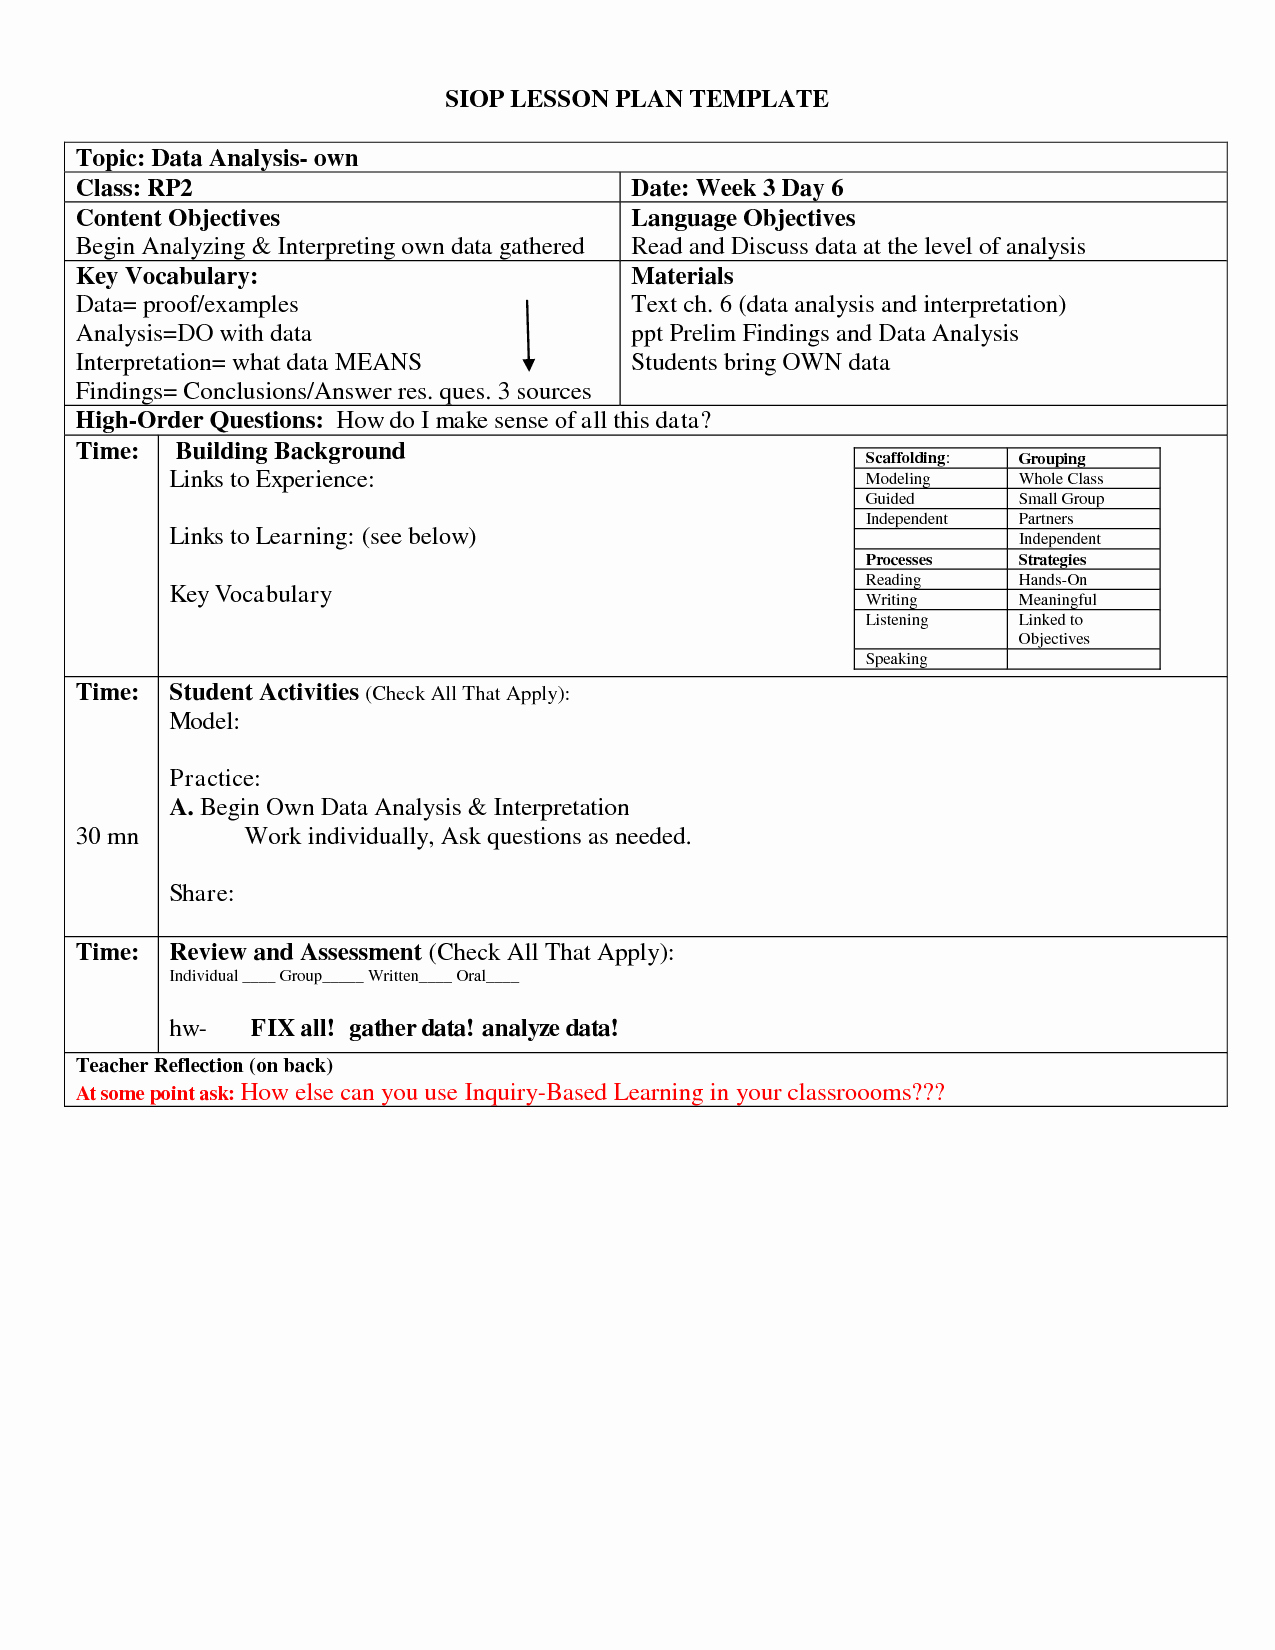 post siop lesson plan template 3